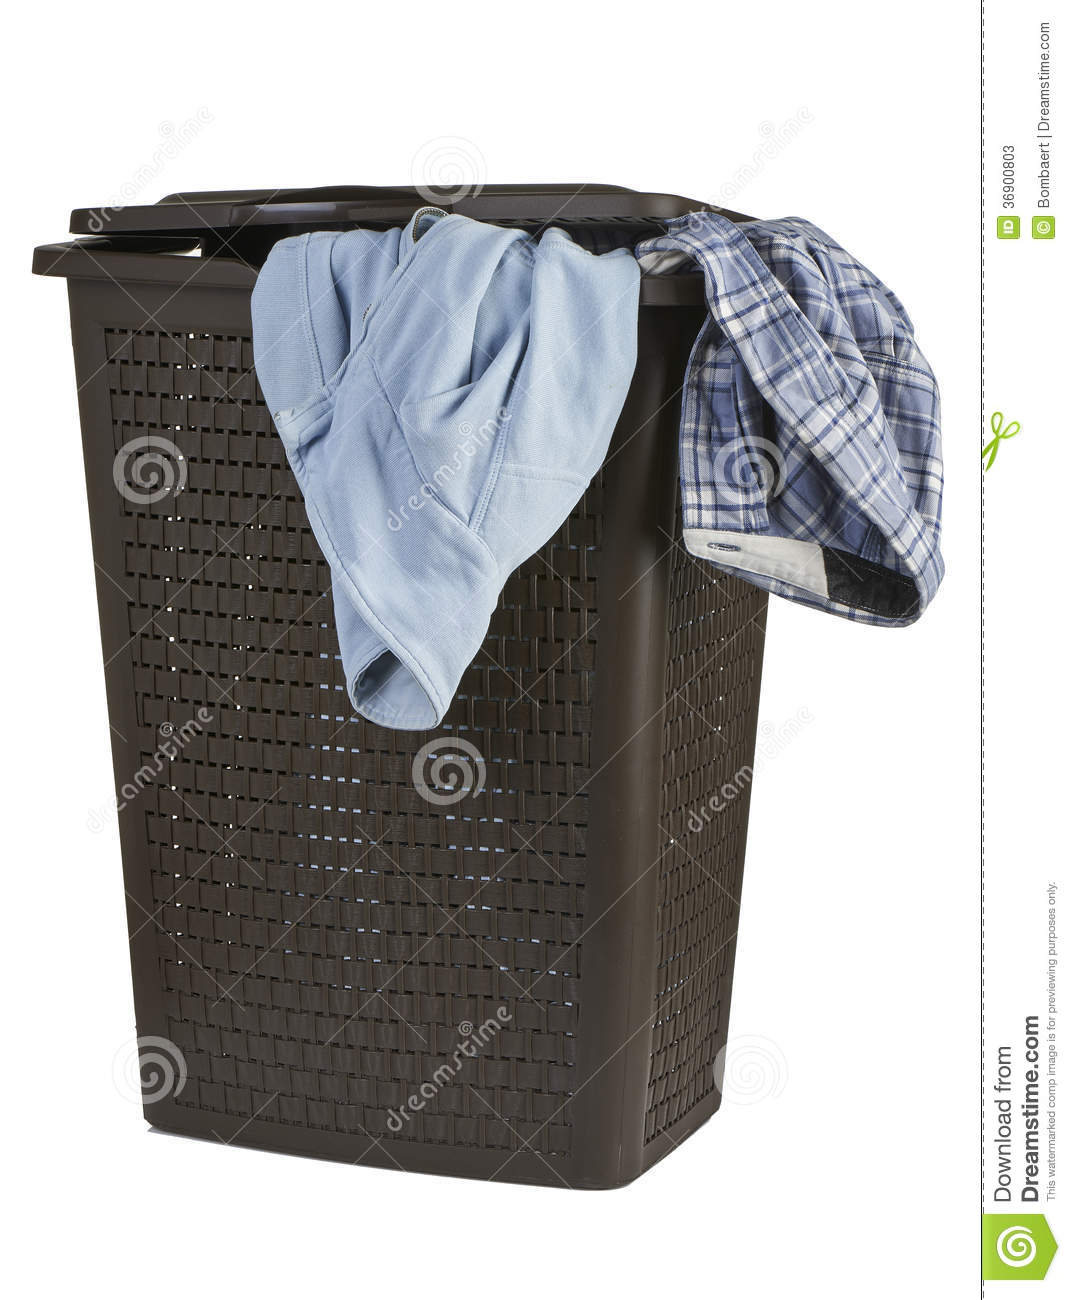 Closed Laundry Basket Bright Clothes In A Laundry Closed Basket Stock Photos